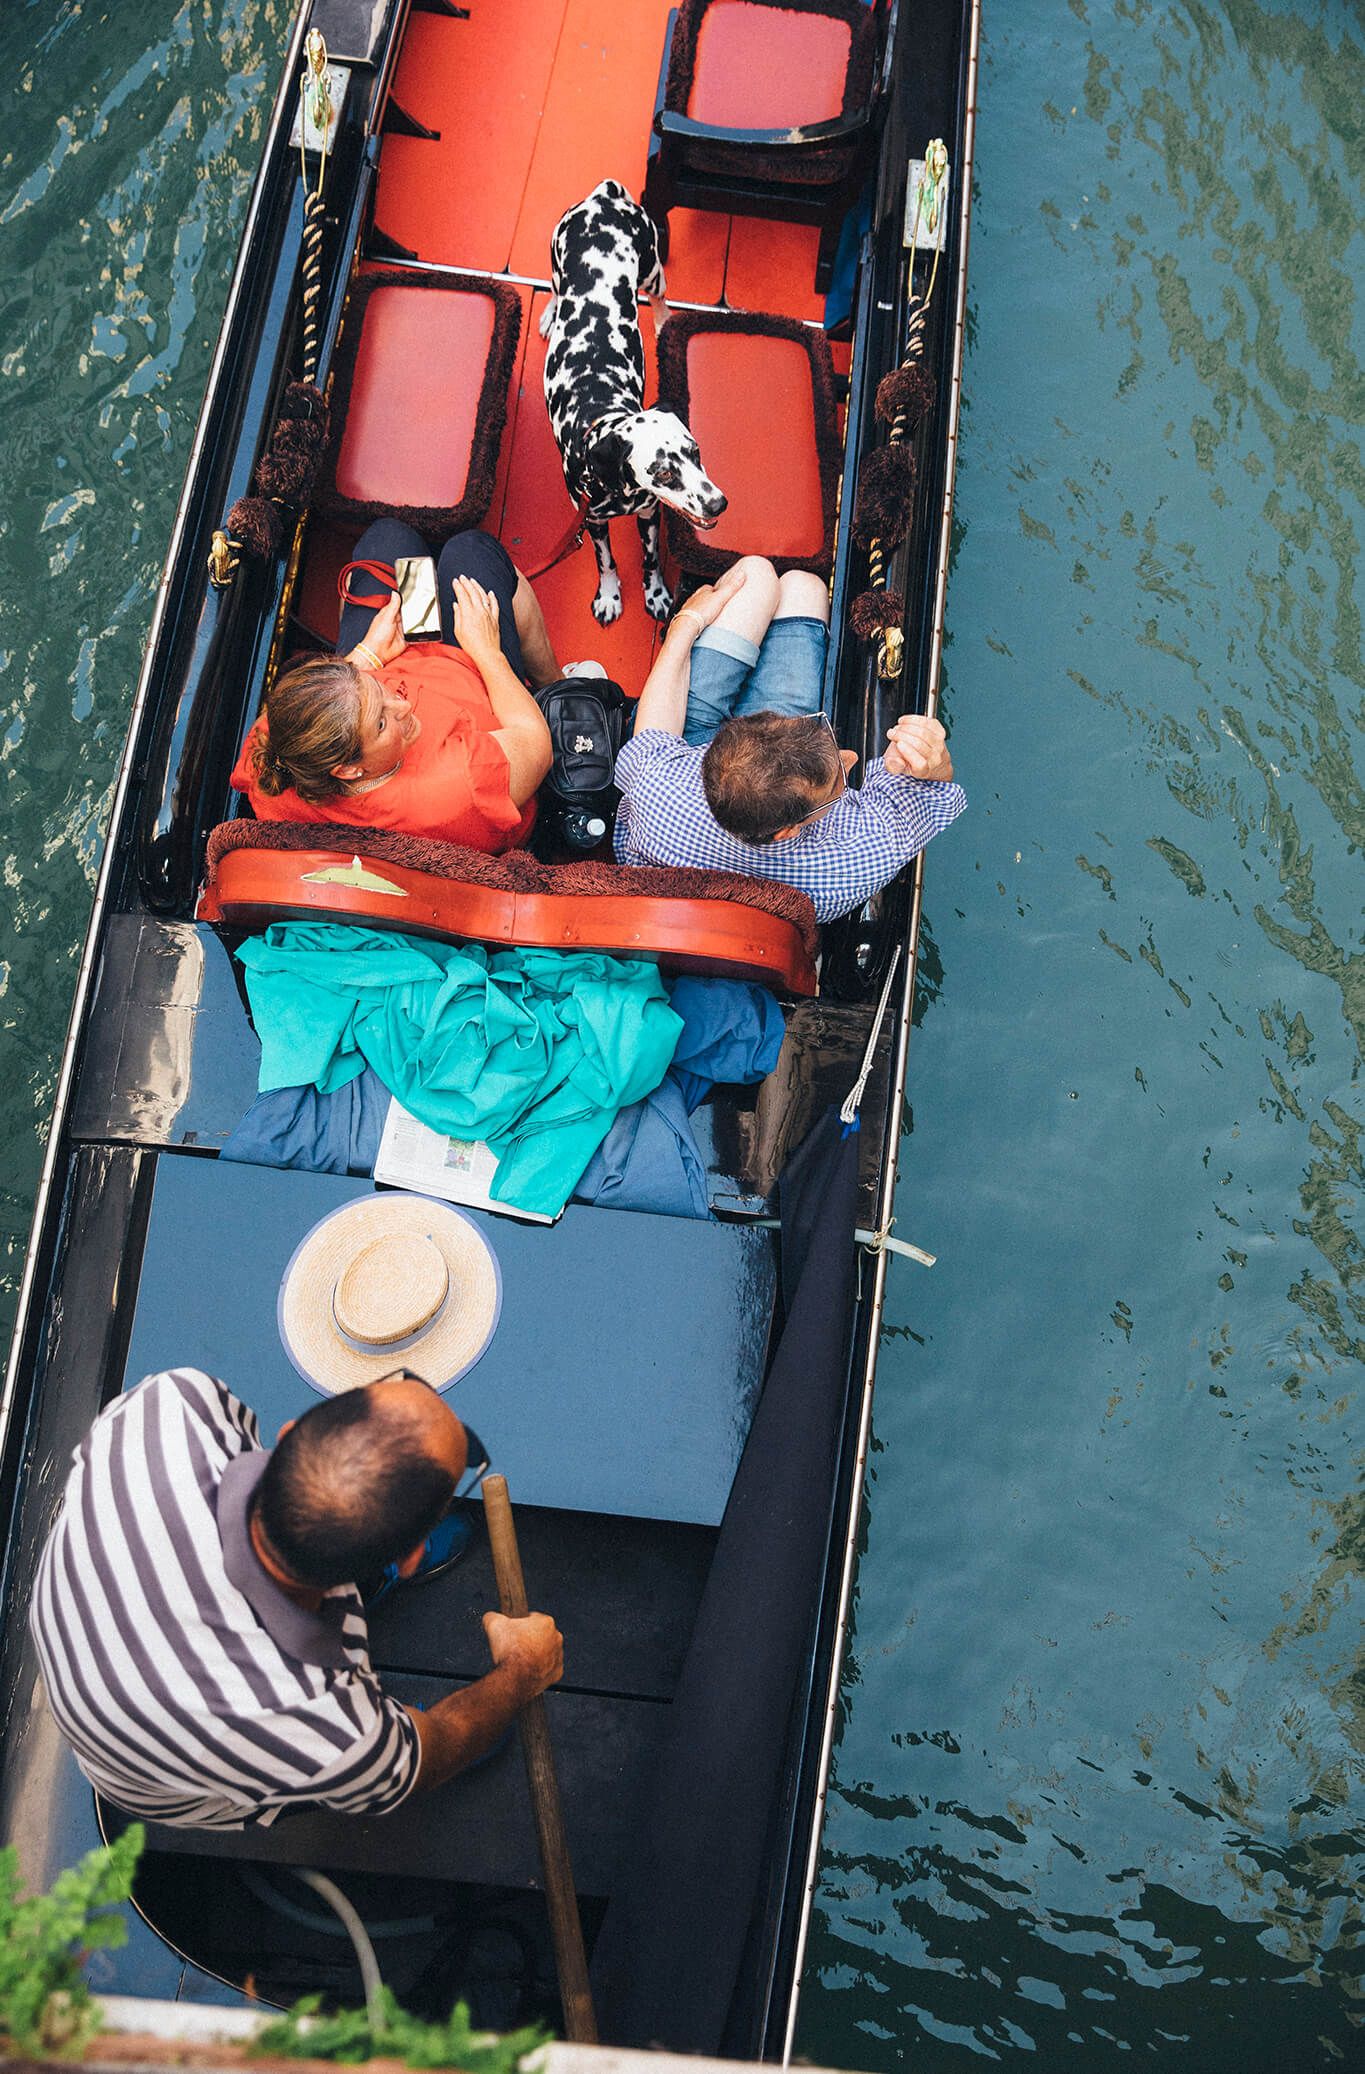 A couple riding in a gondola with a Dalmatian in Venice, Italy